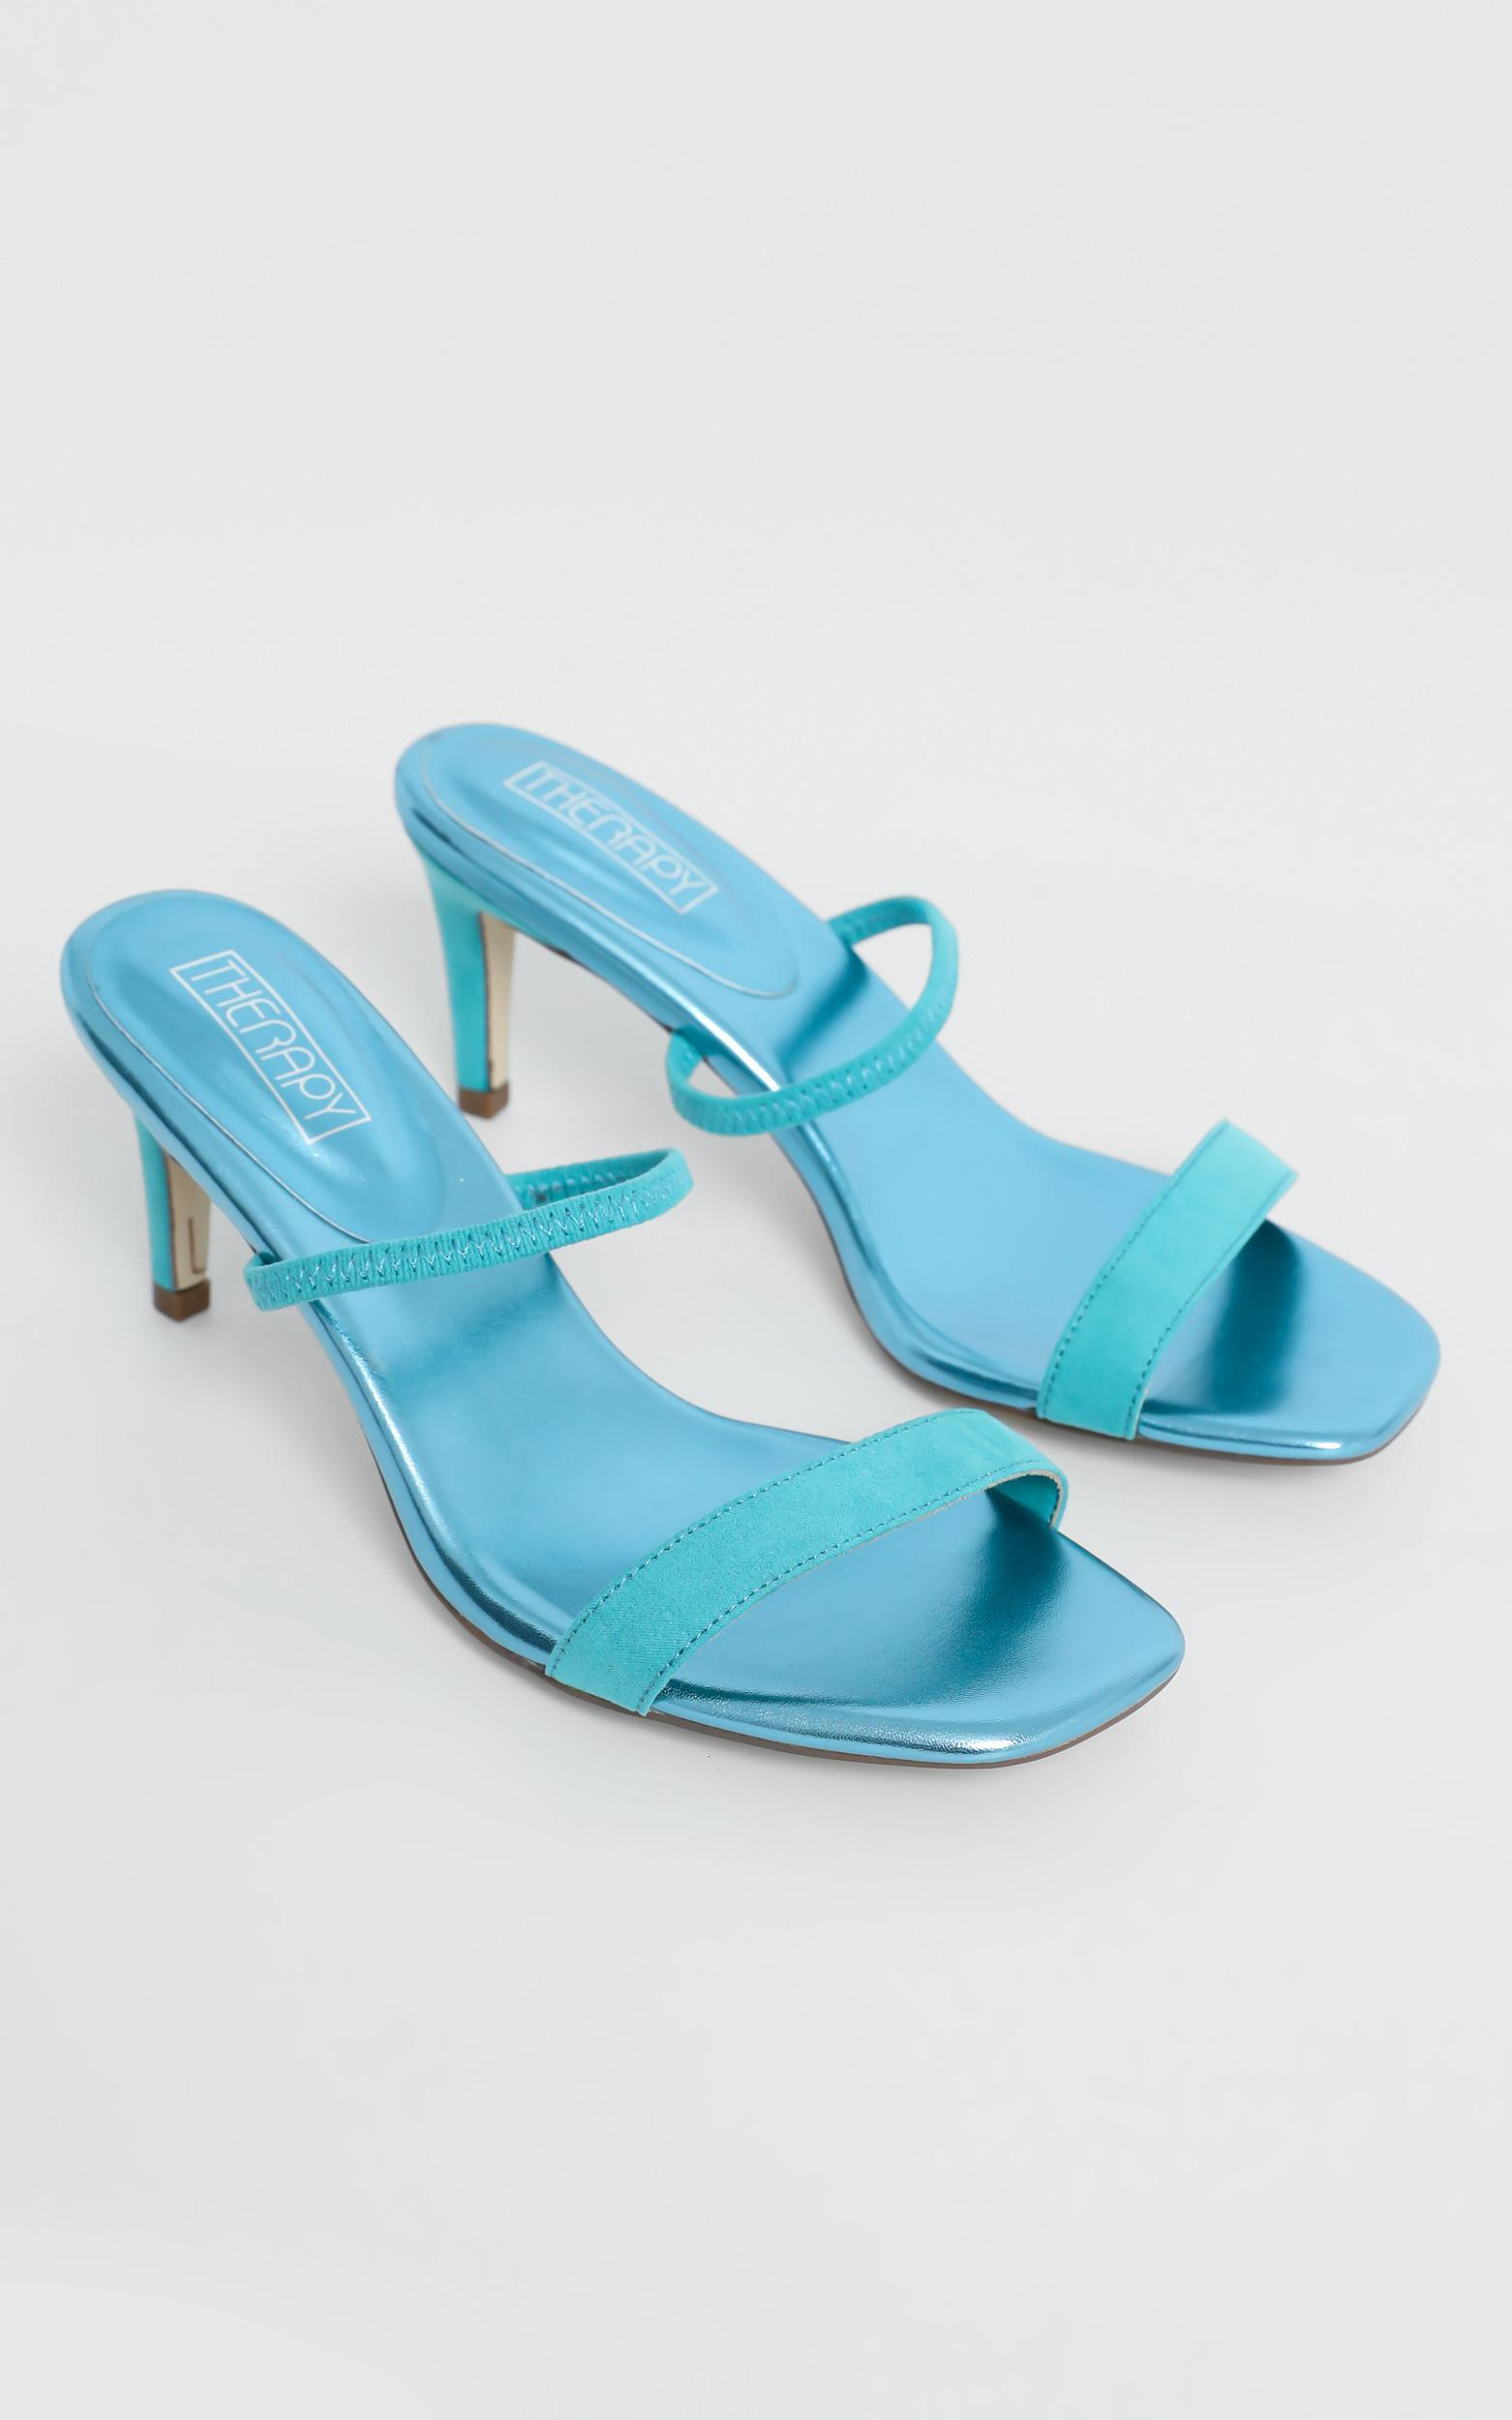 Therapy - Flash Heels in Seafoam - 5, Blue, hi-res image number null